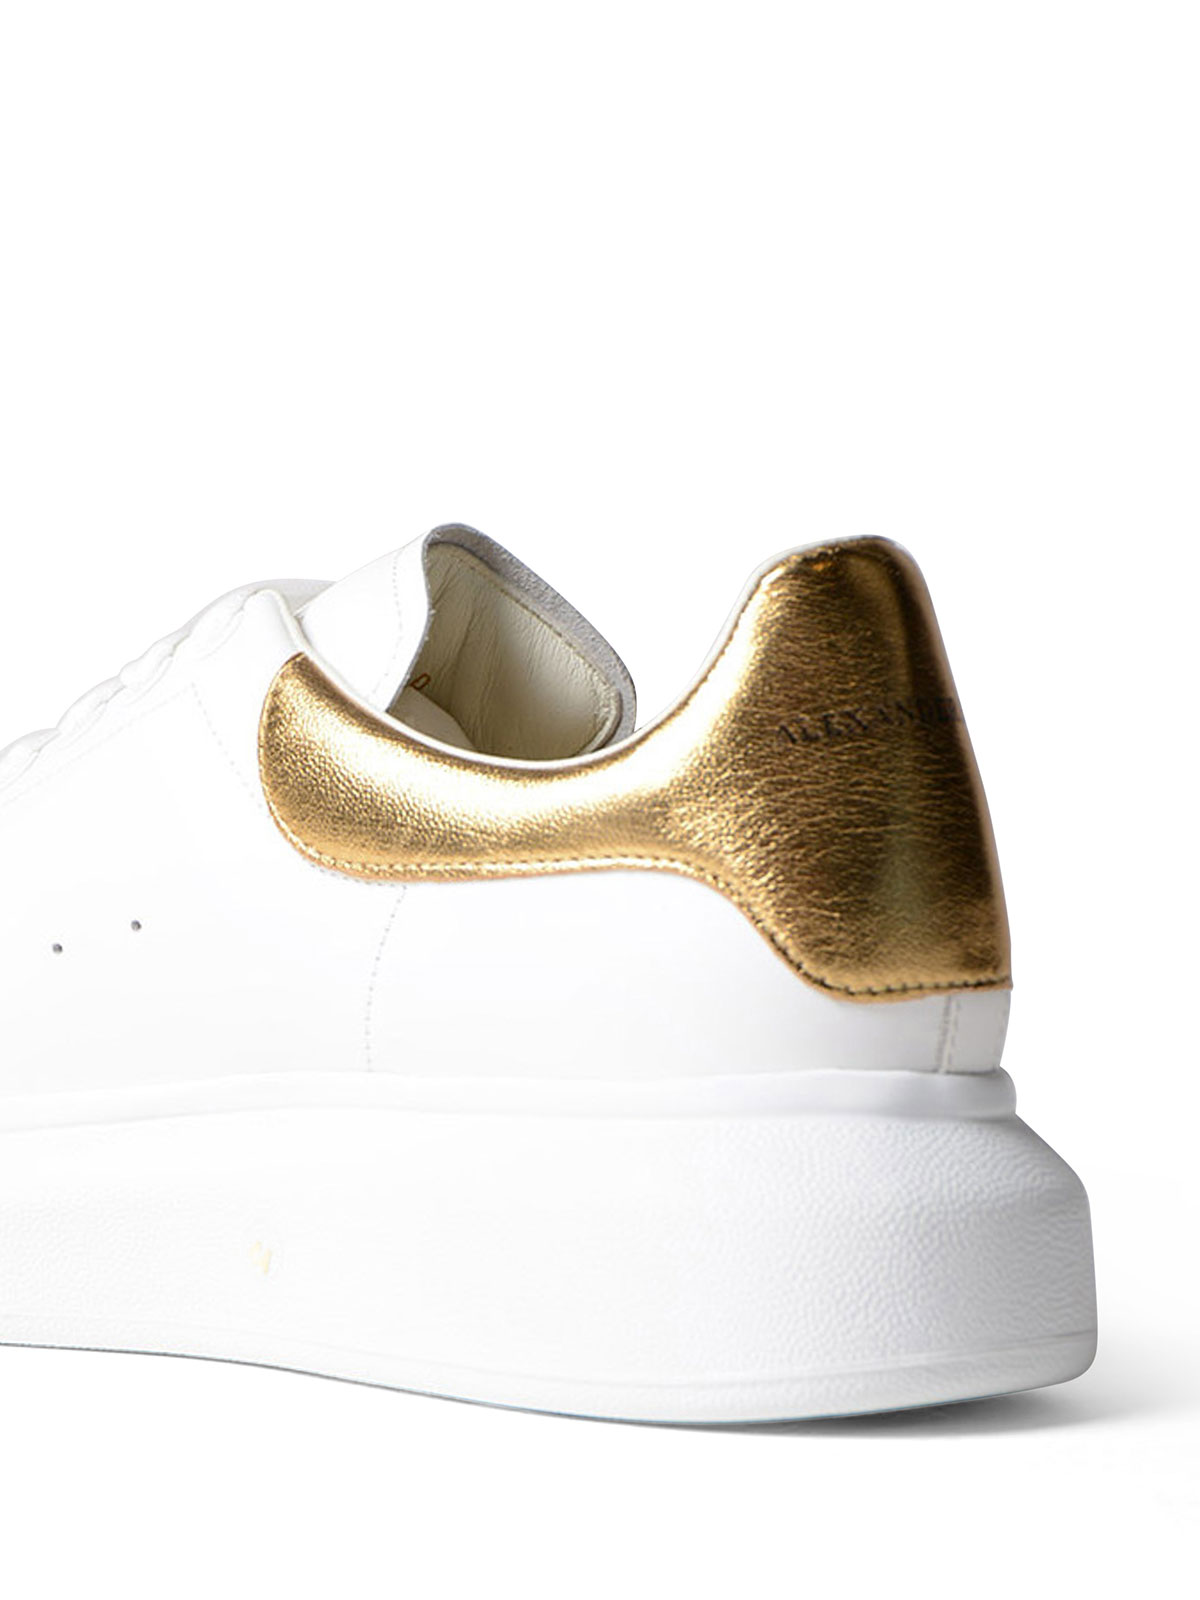 caa6e9a858 iKRIX ALEXANDER MCQUEEN  trainers - Oversize metal gold white sneakers